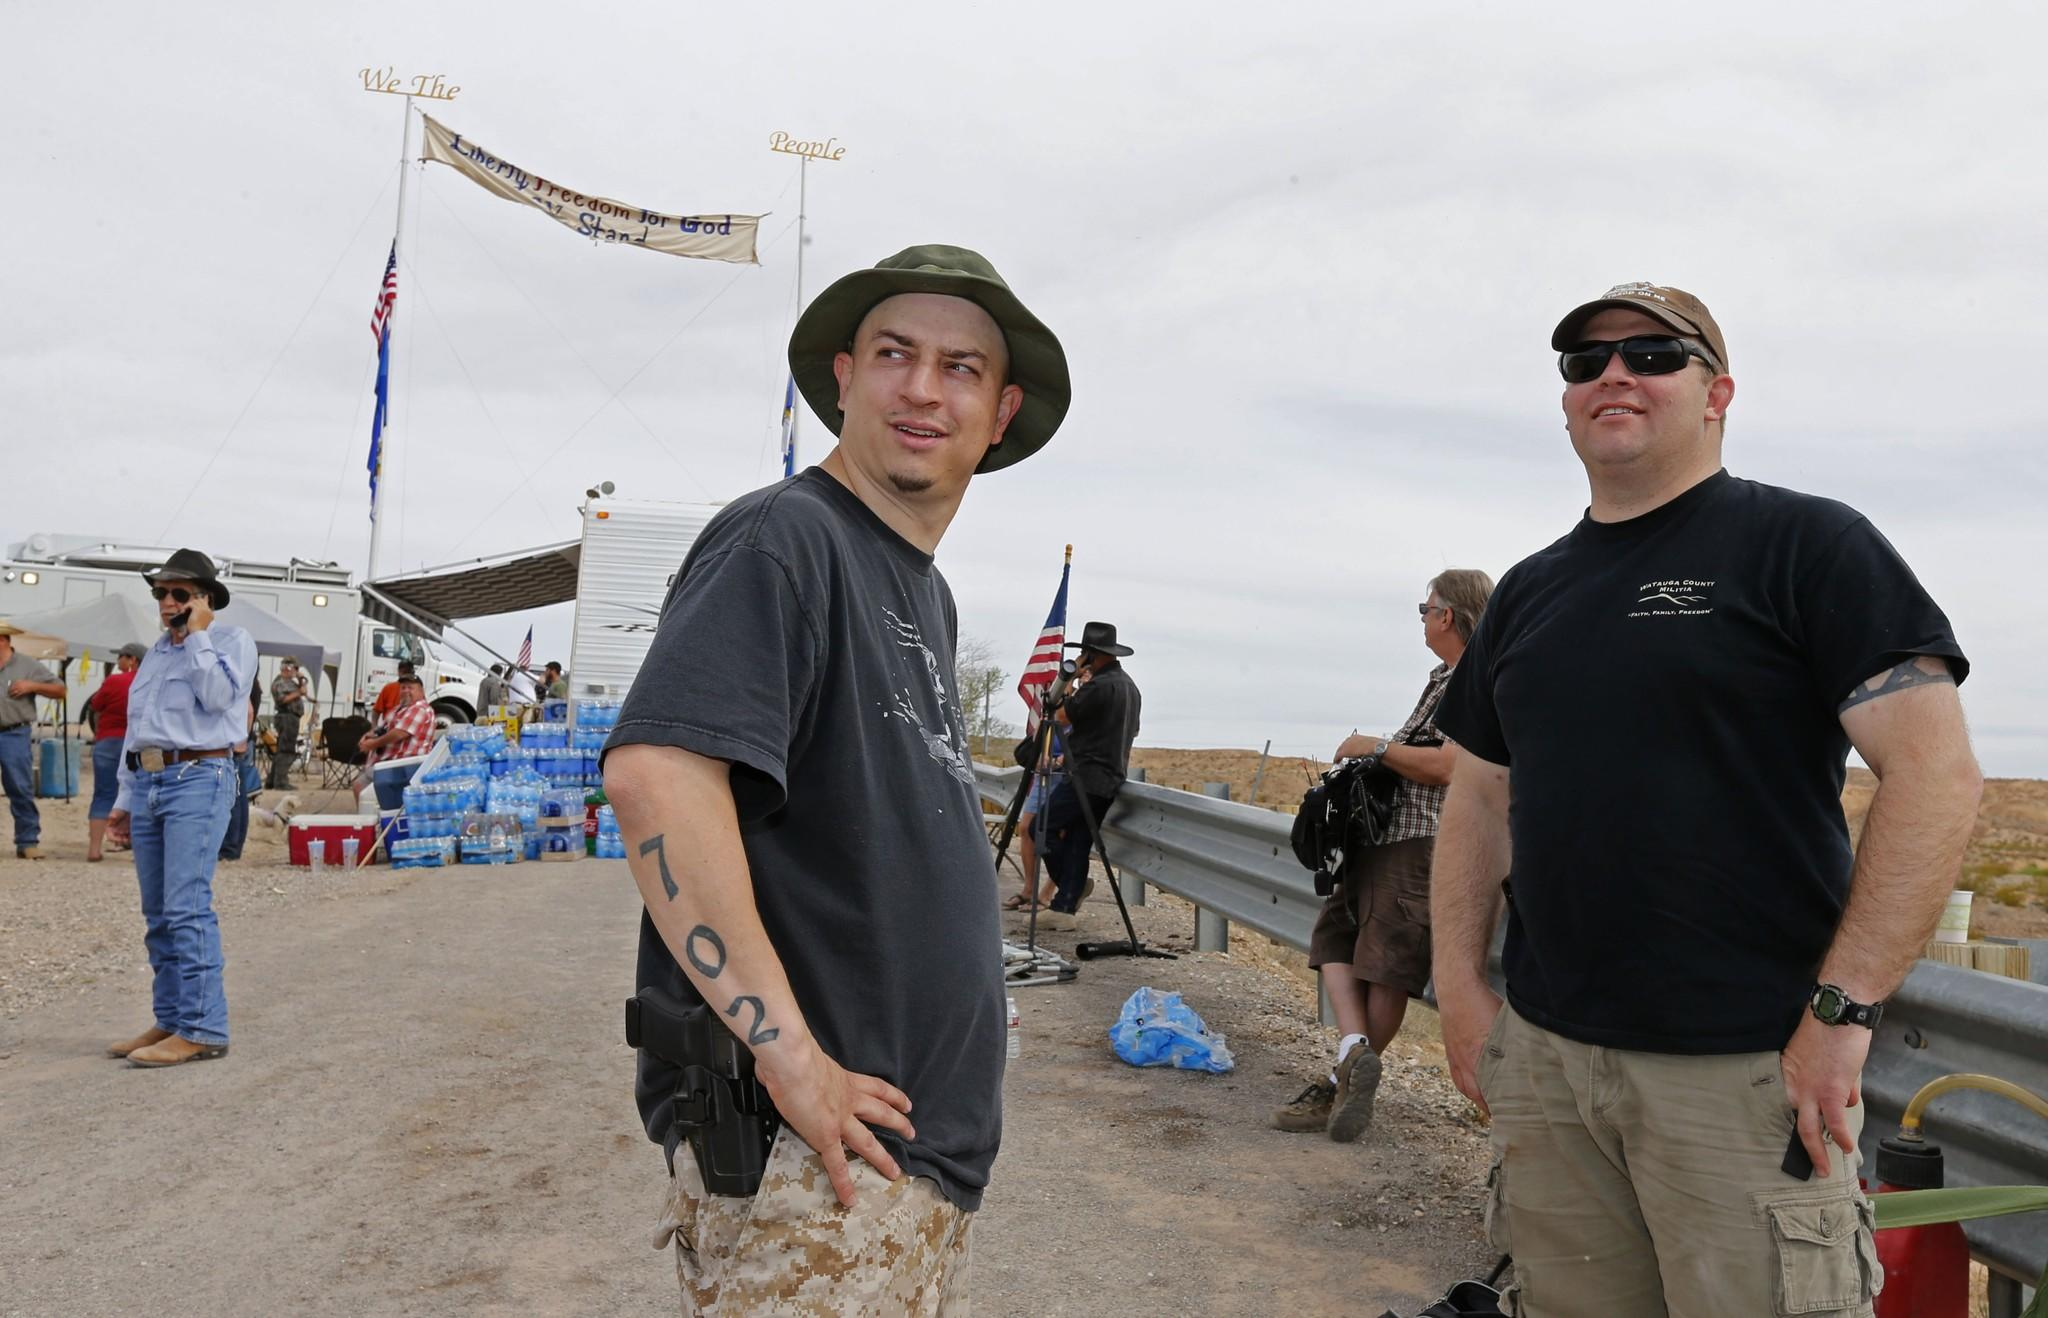 With a sidearm strapped to his side, Anthony Herrea, left, and an unidentified person stand along a protest area along U.S. 170 on April 11 west of Mesquite, Nev.